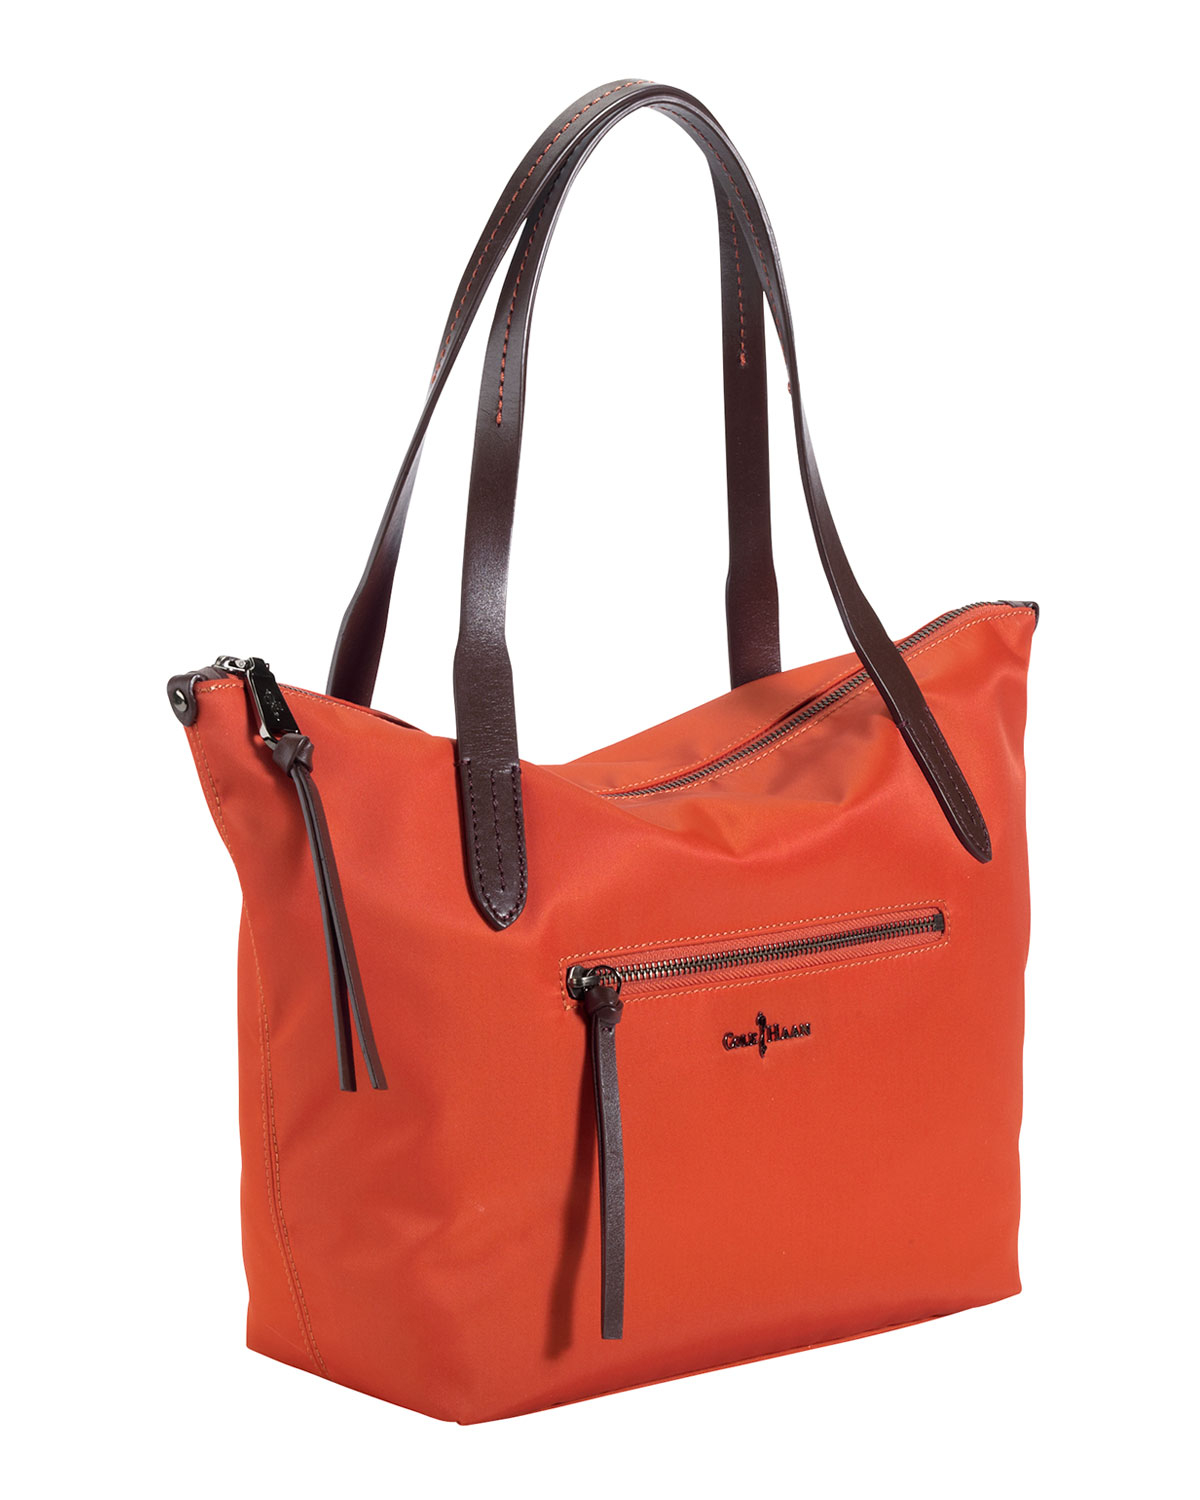 Cole haan Parker Small Nylon Ziptop Tote Bag Orange in Orange | Lyst